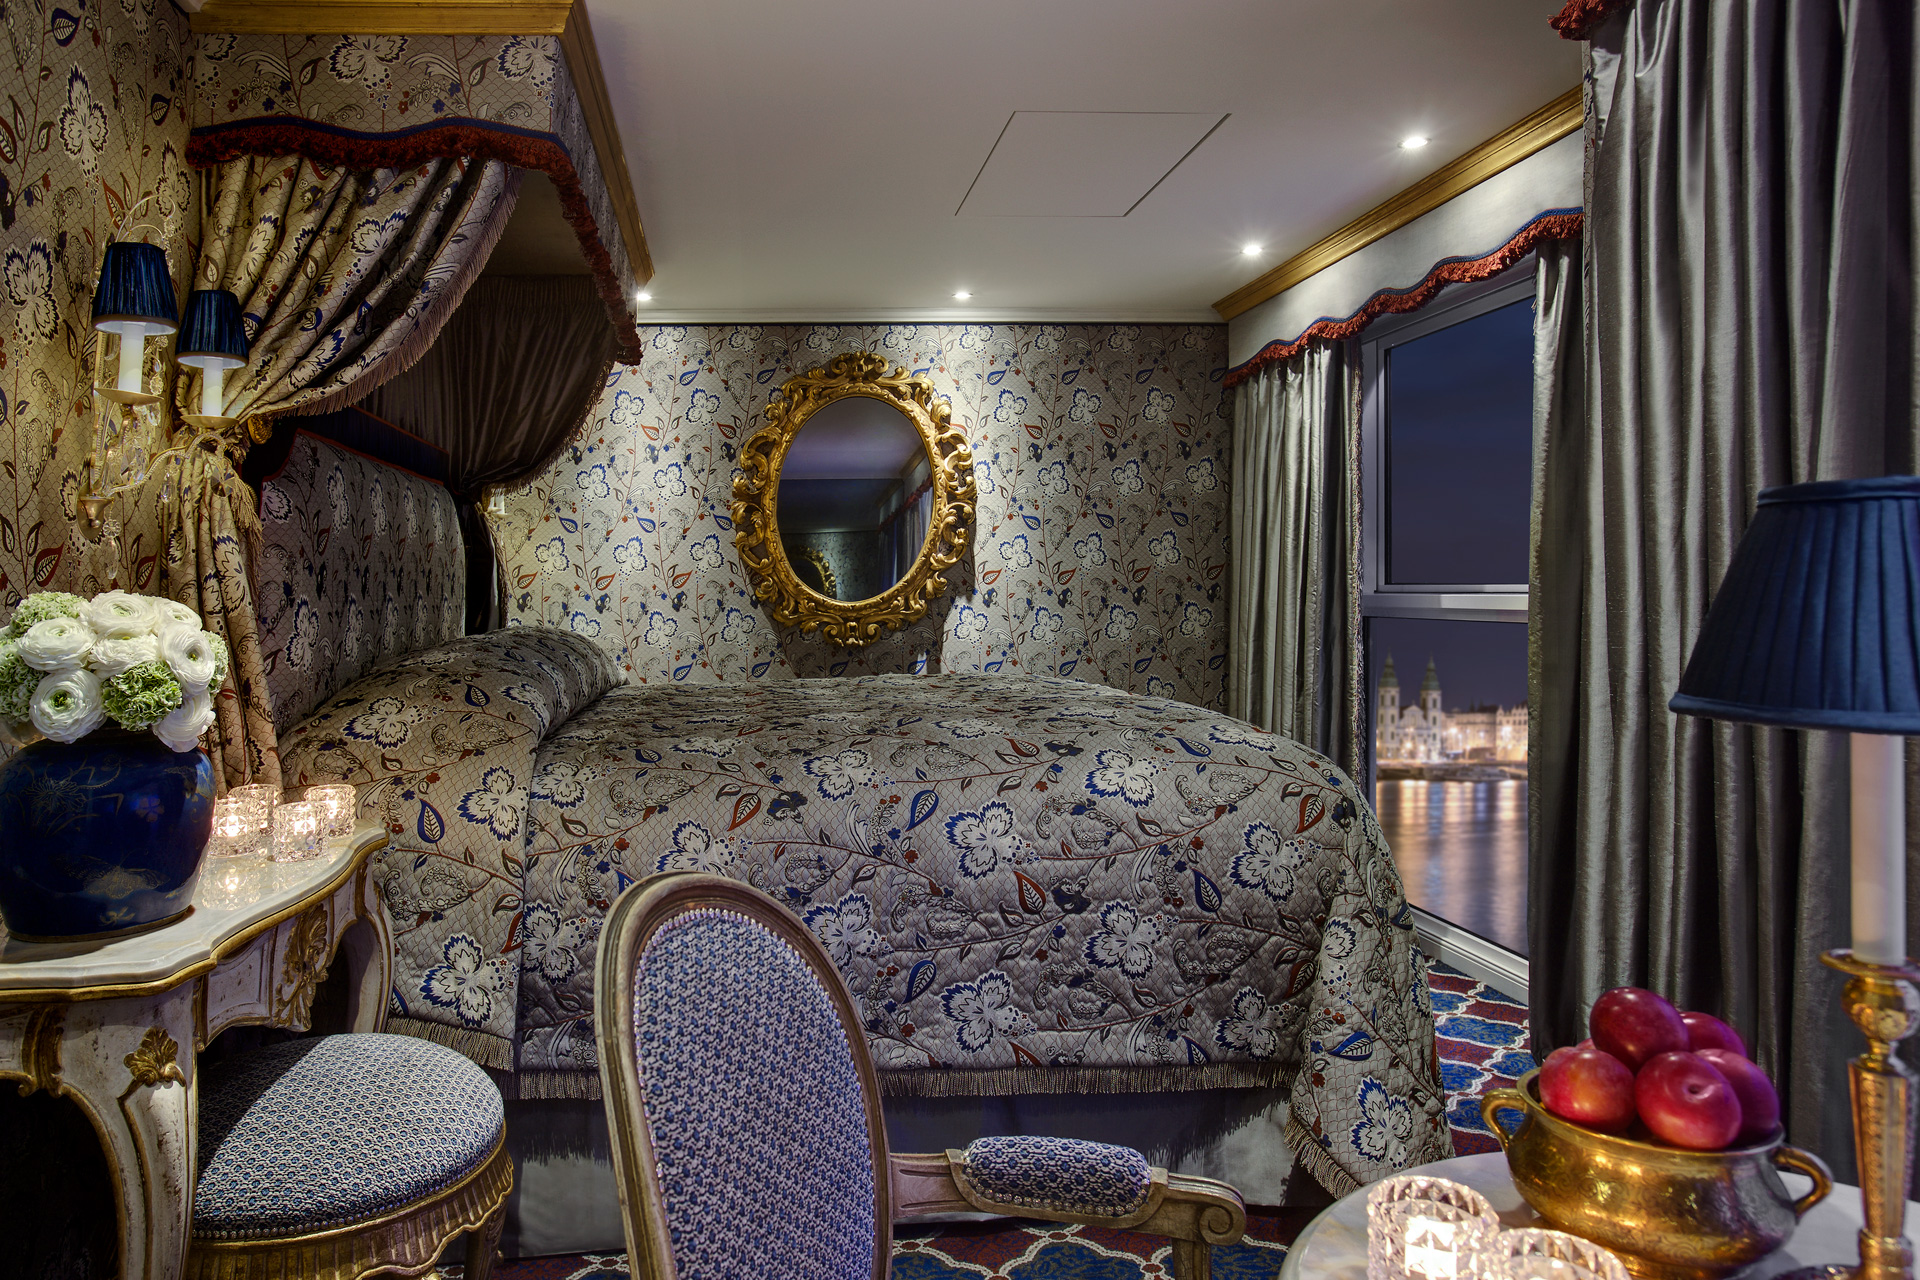 UNIWORLD Boutique River Cruises SS Maria Theresa Accommodation Suite 408.jpg